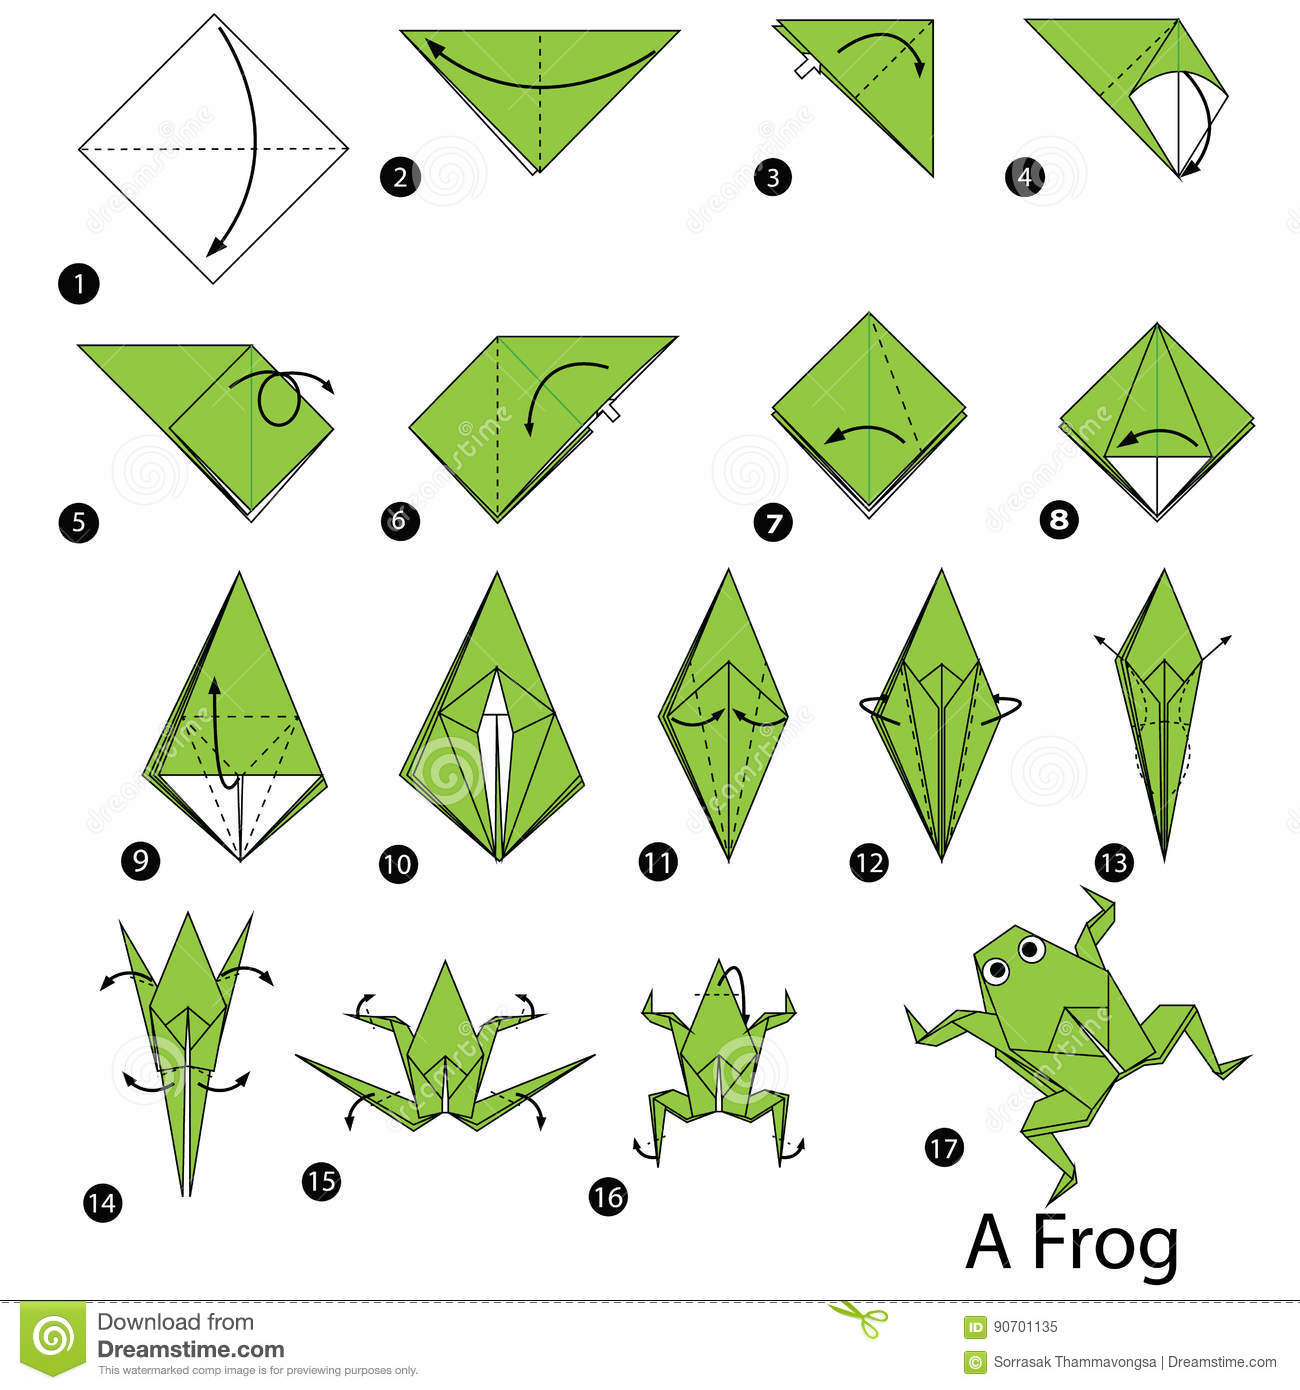 How To Make A Origami Frog